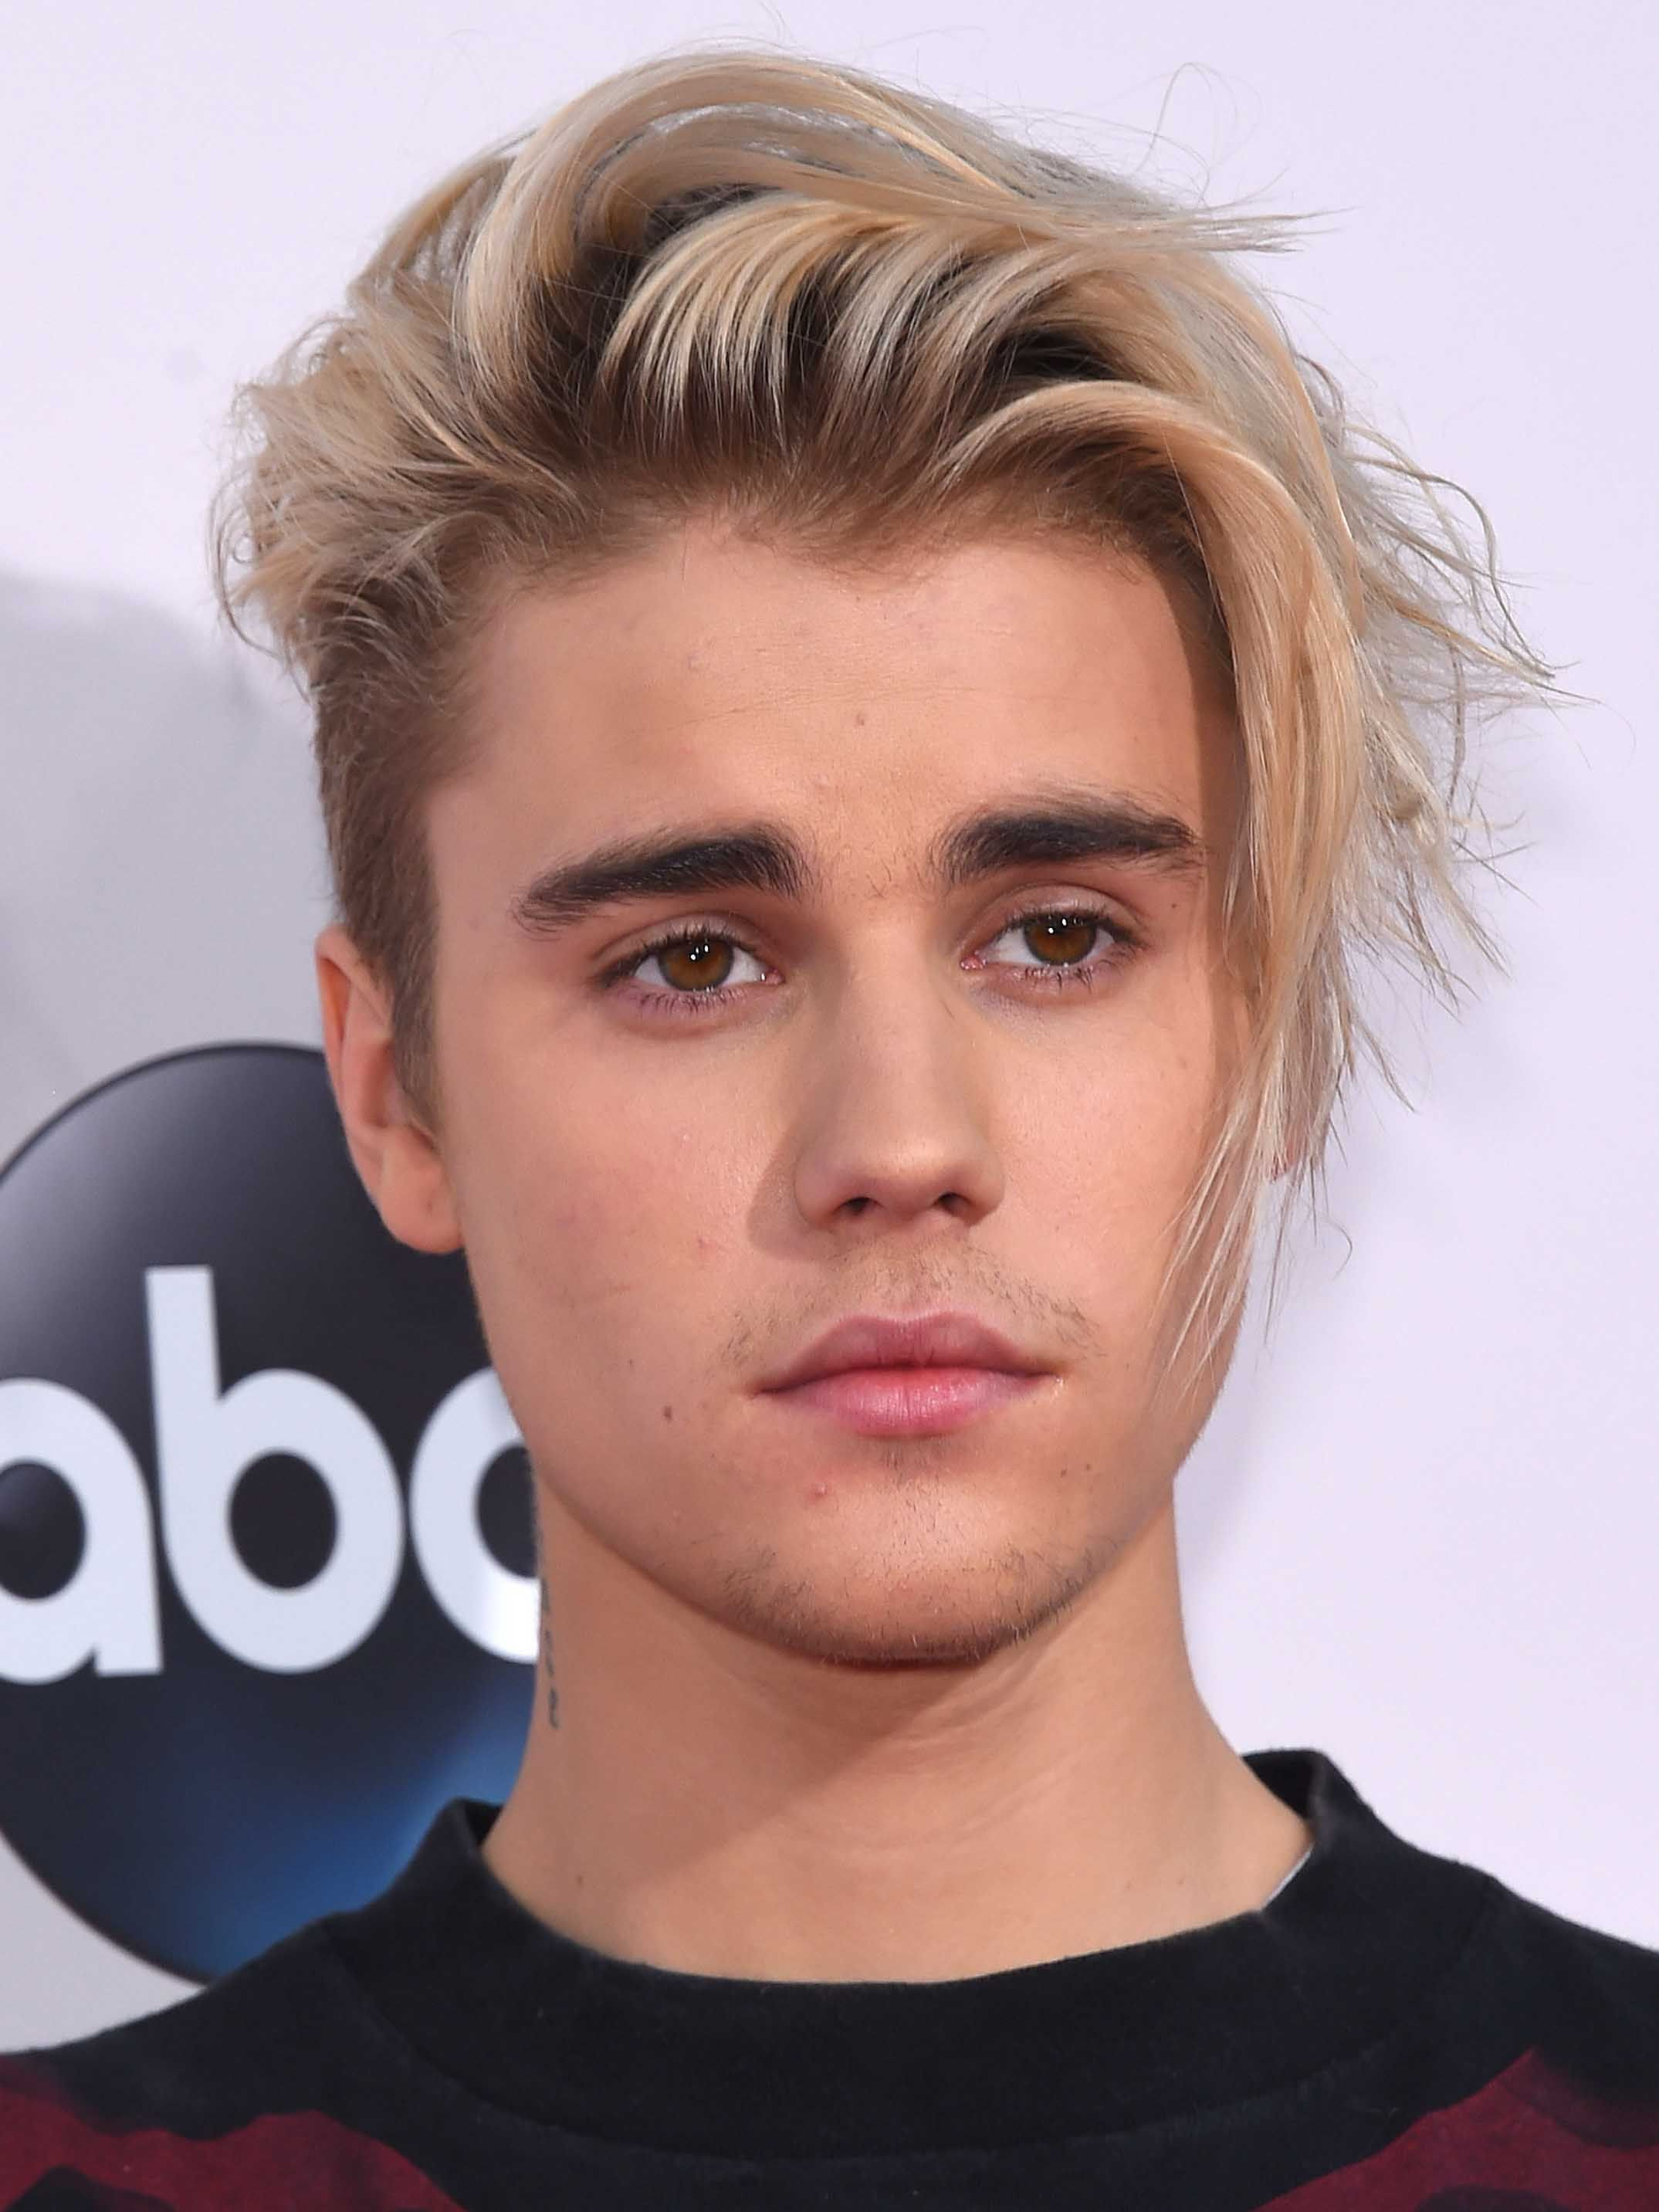 Edgy Side Swept Fringe Shorthairedgy Haircuts For Men Justin Bieber Long Hair Long Hair Styles Men